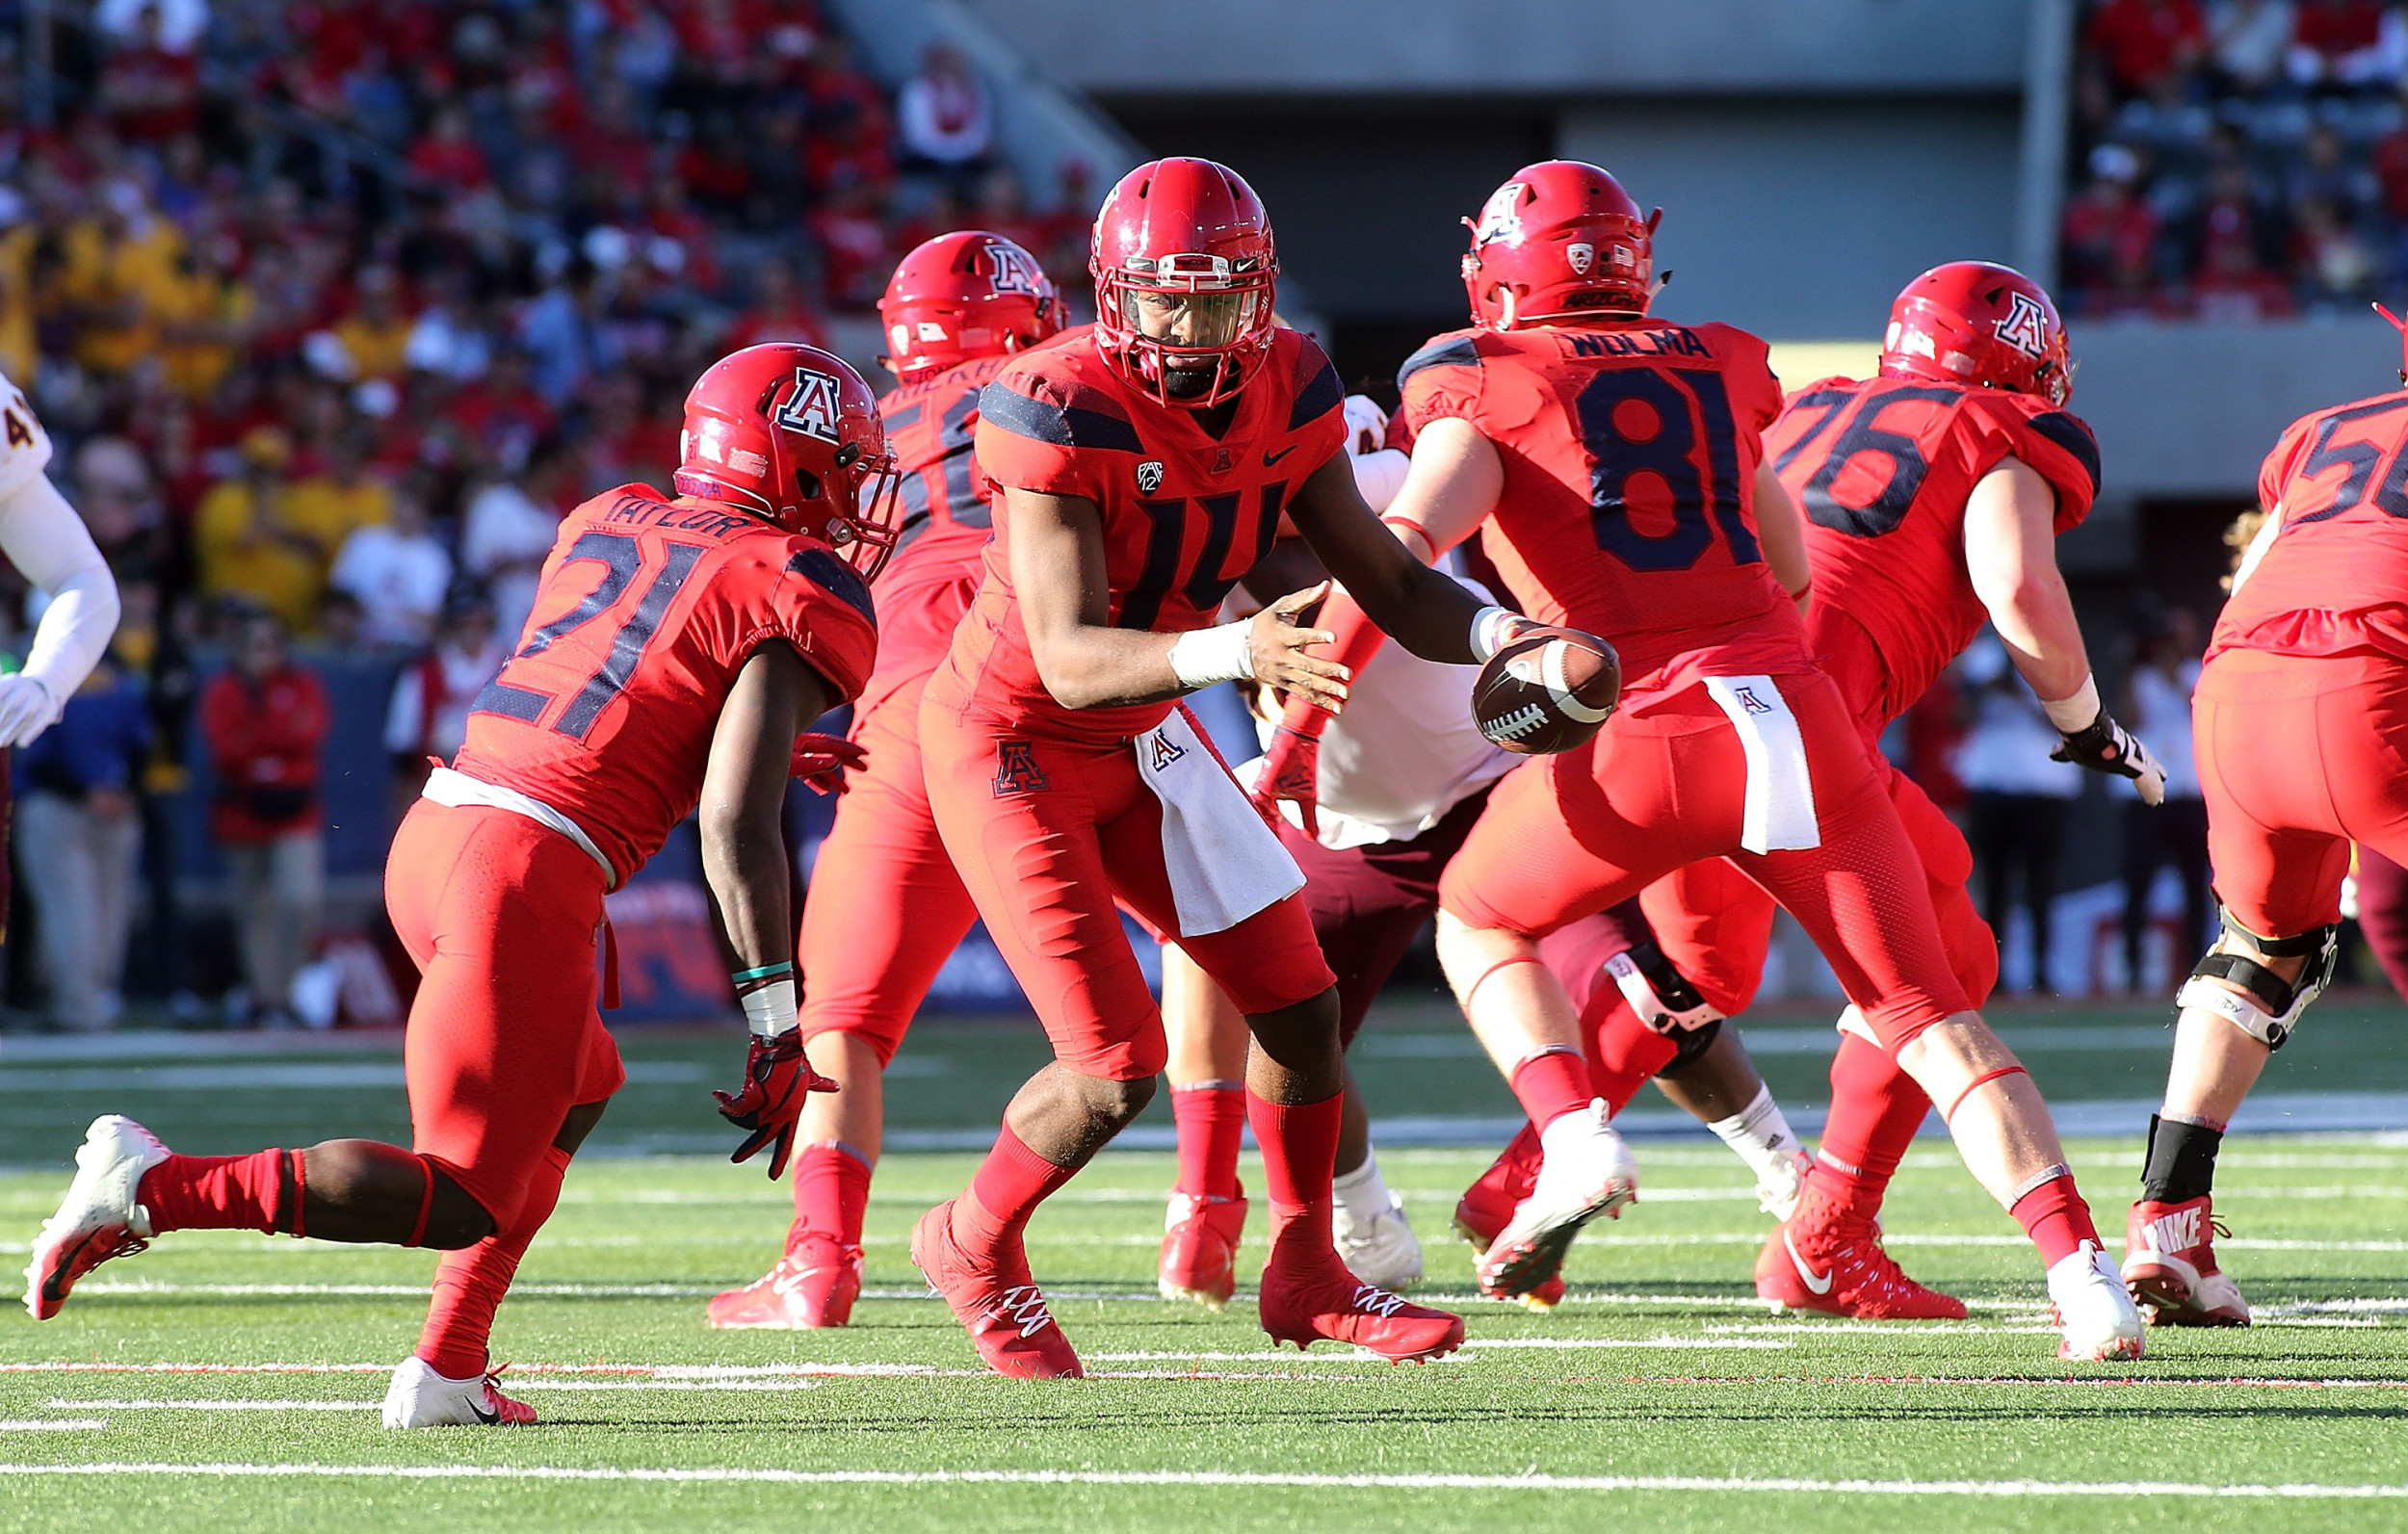 finest selection 4ed39 70442 College Football 2019: Where to Watch Arizona vs. Hawaii, TV ...